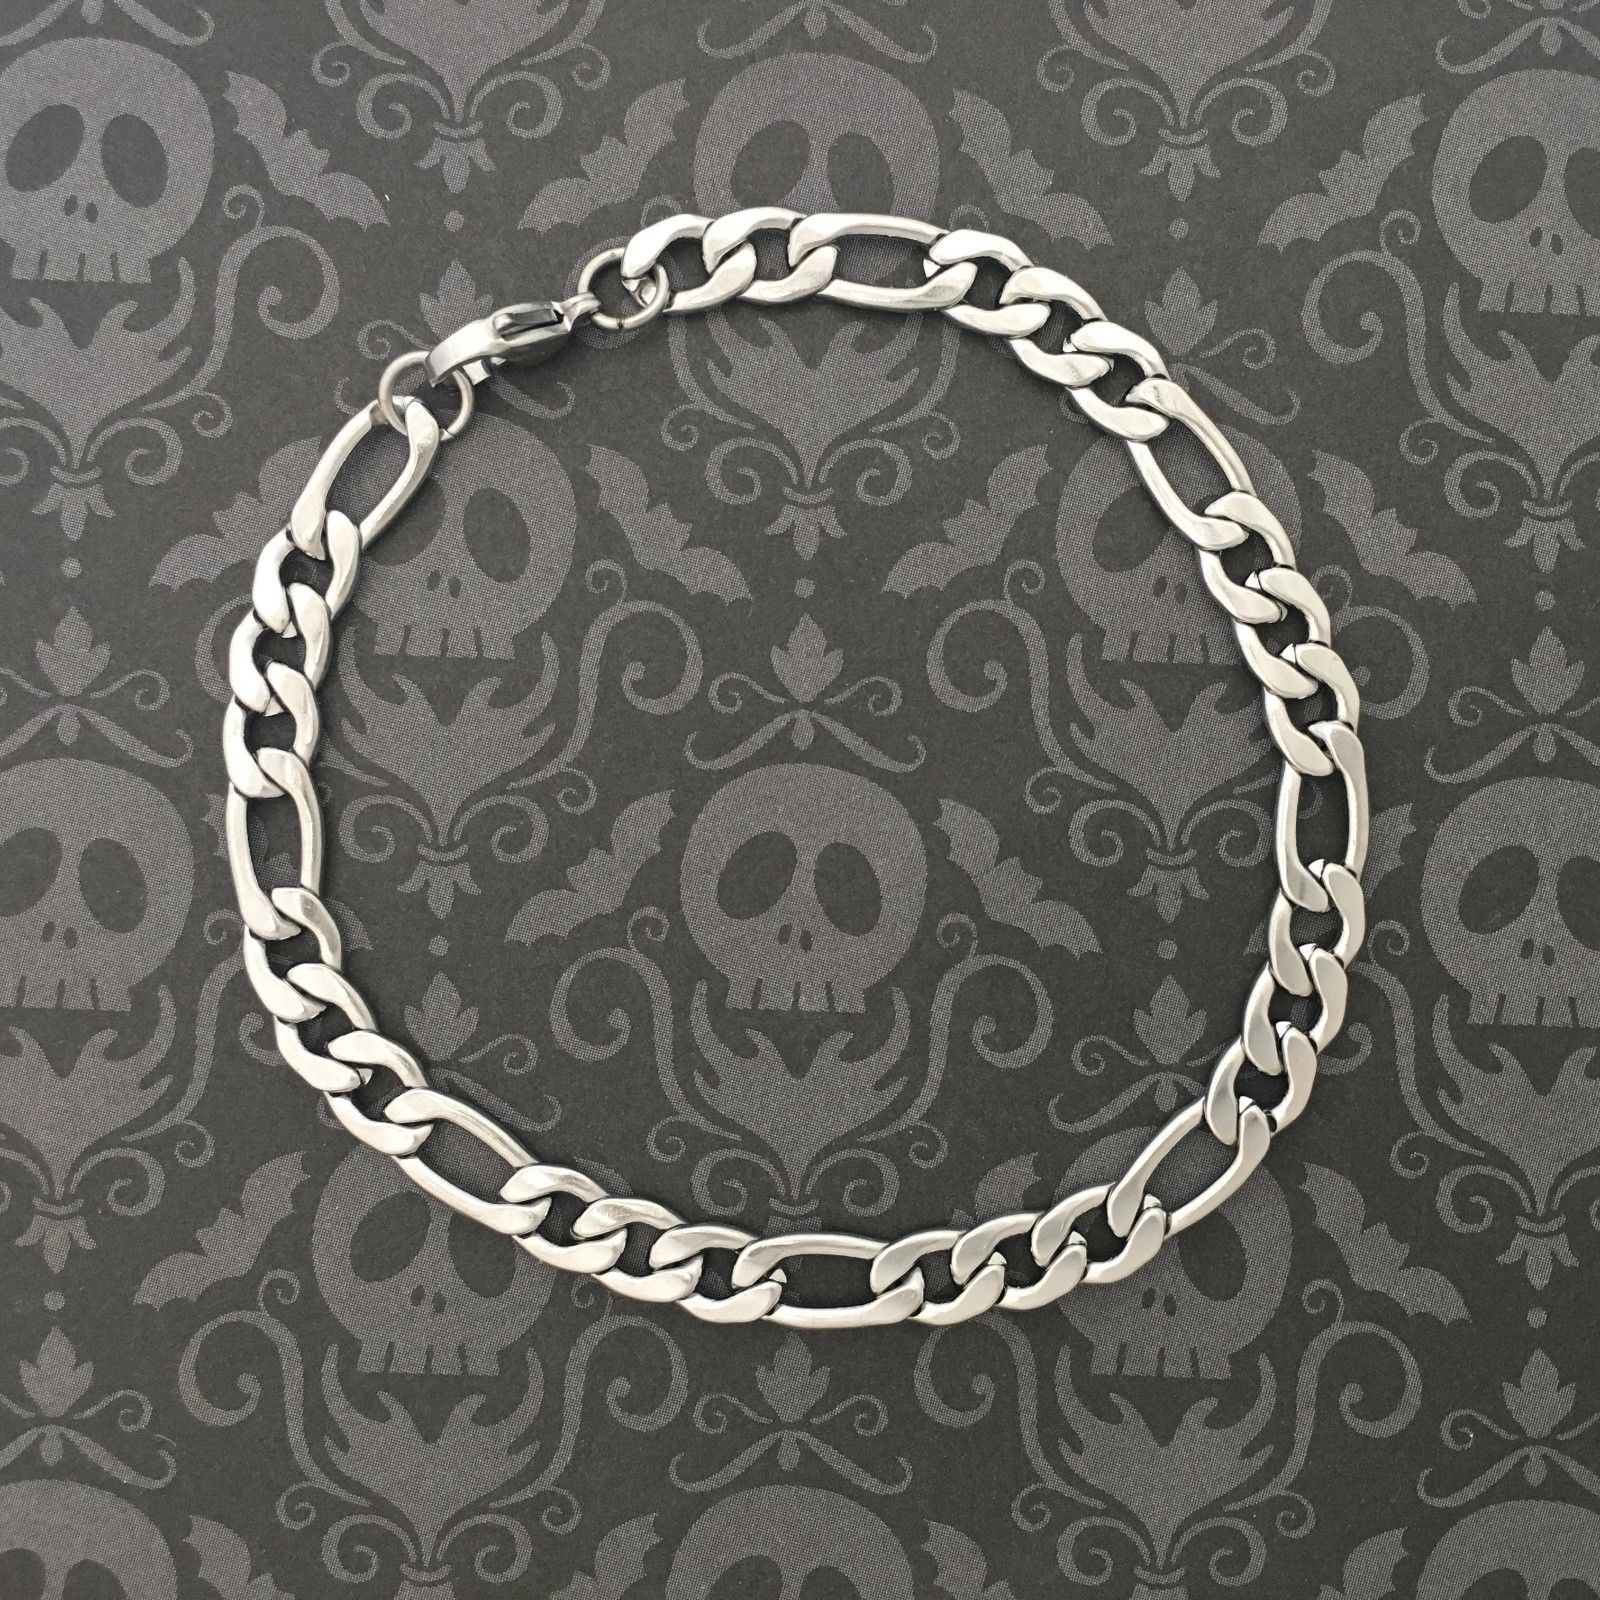 7 1/2 in. Solid Stainless Steel Figaro Chain Bracelet lead-free, Nickel-free